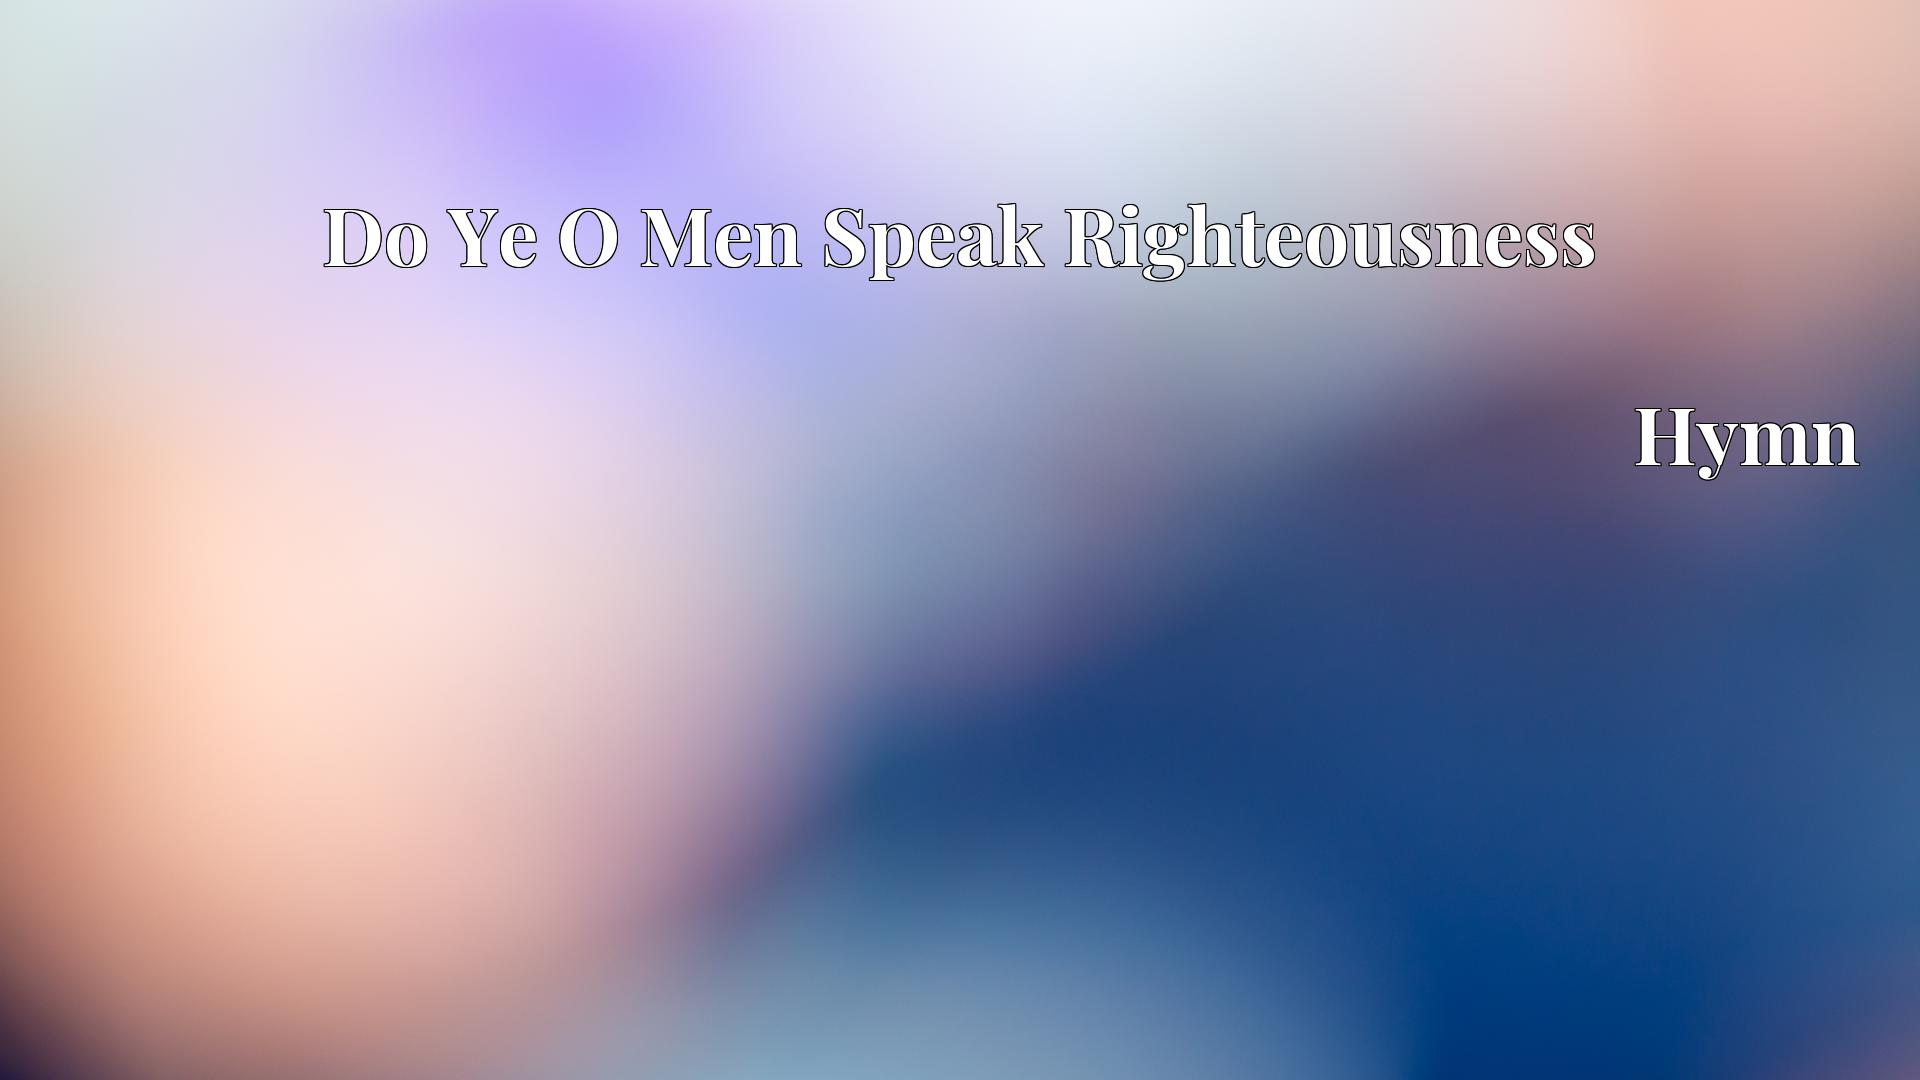 Do Ye O Men Speak Righteousness - Hymn